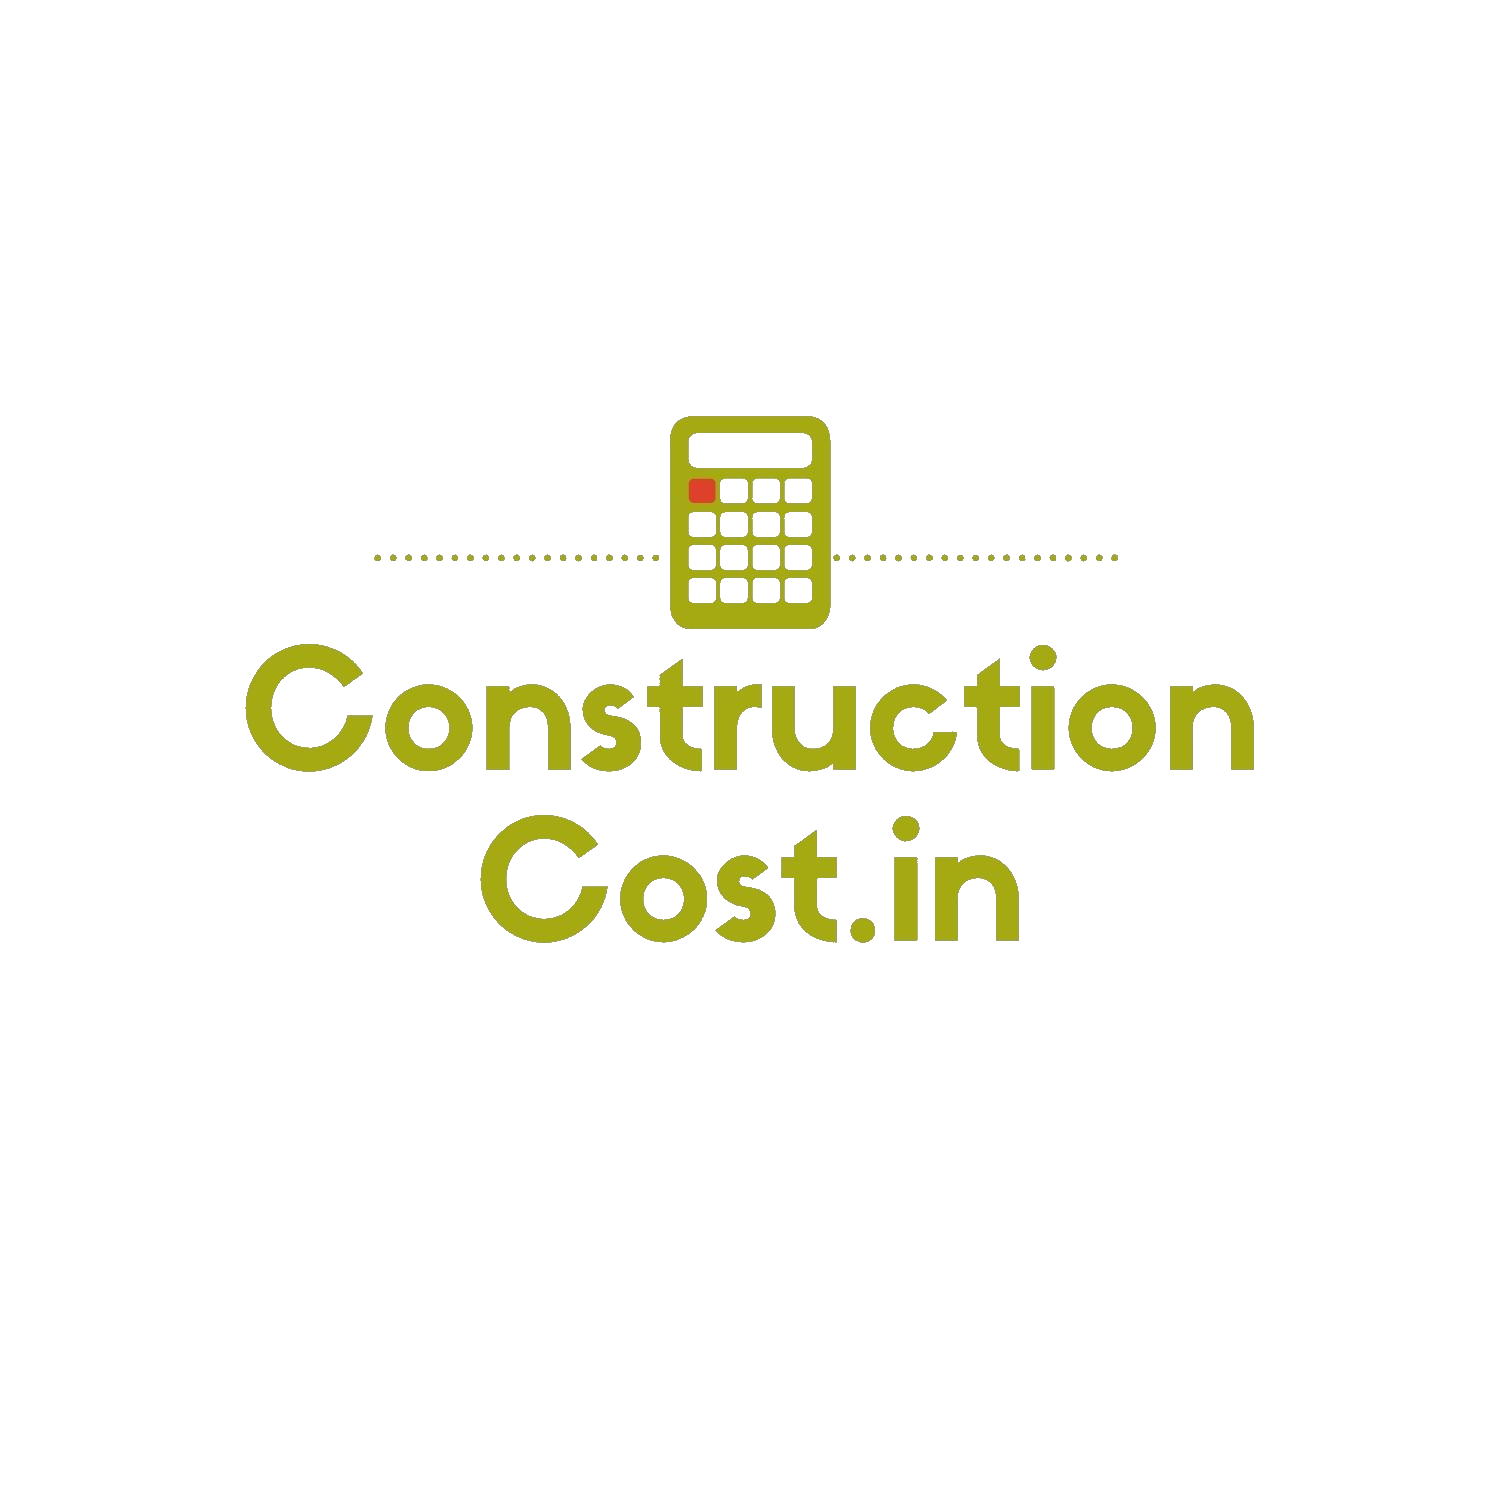 constructioncost.in